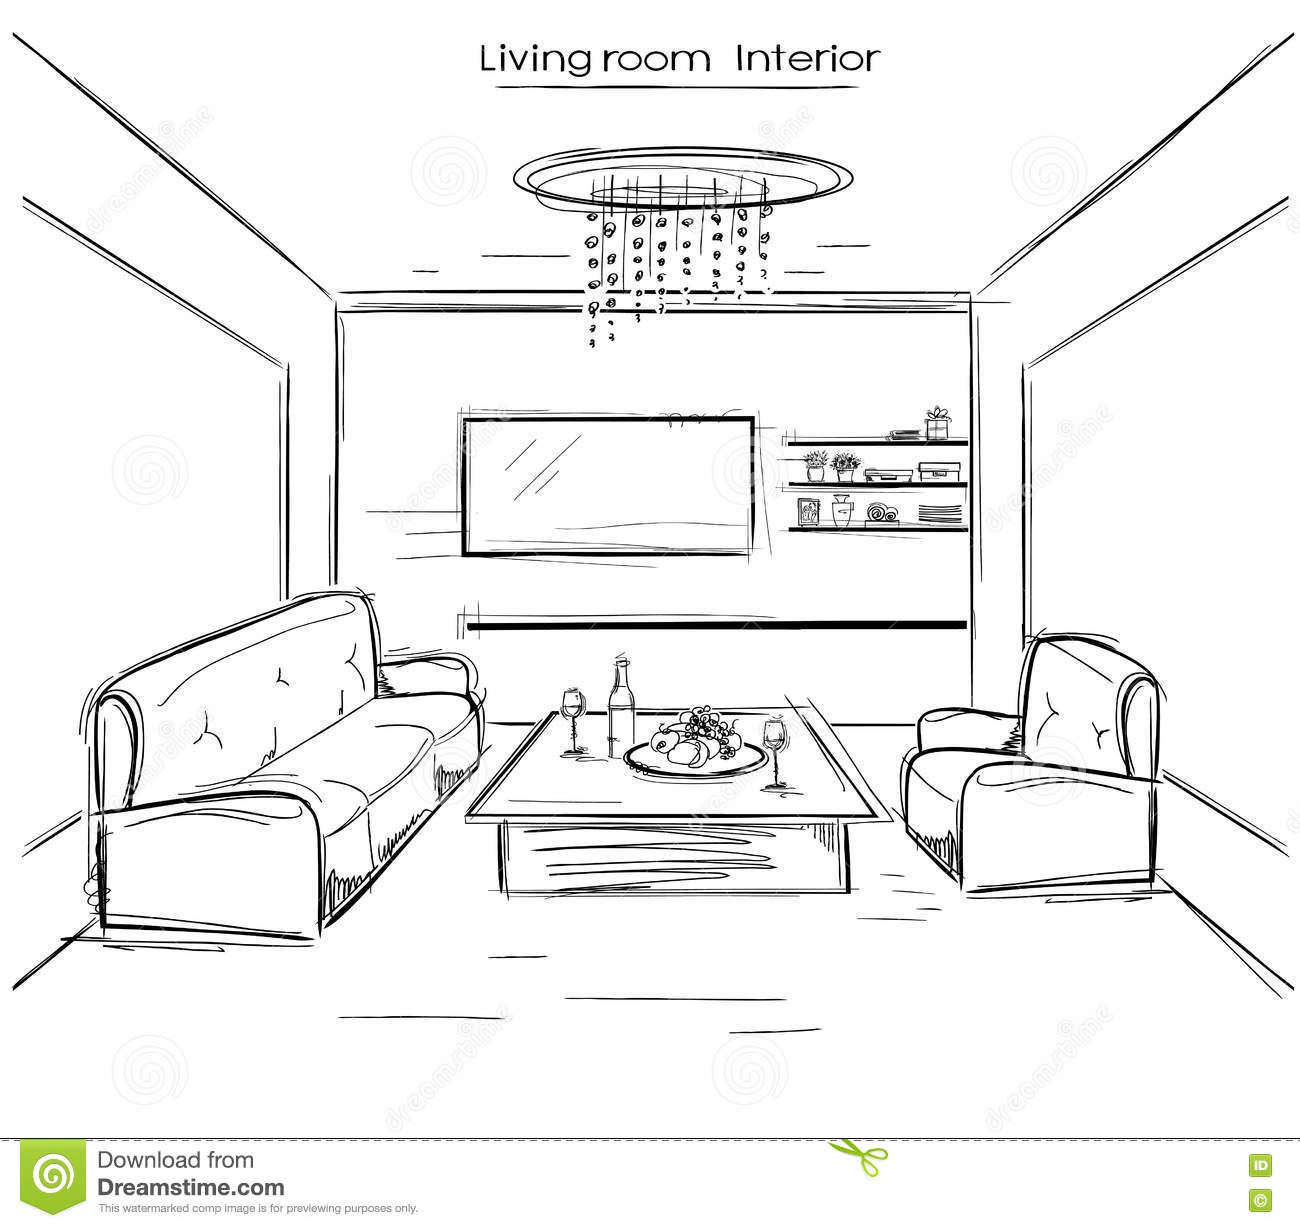 Living Room InteriorVector Black Hand Drawing Illustration